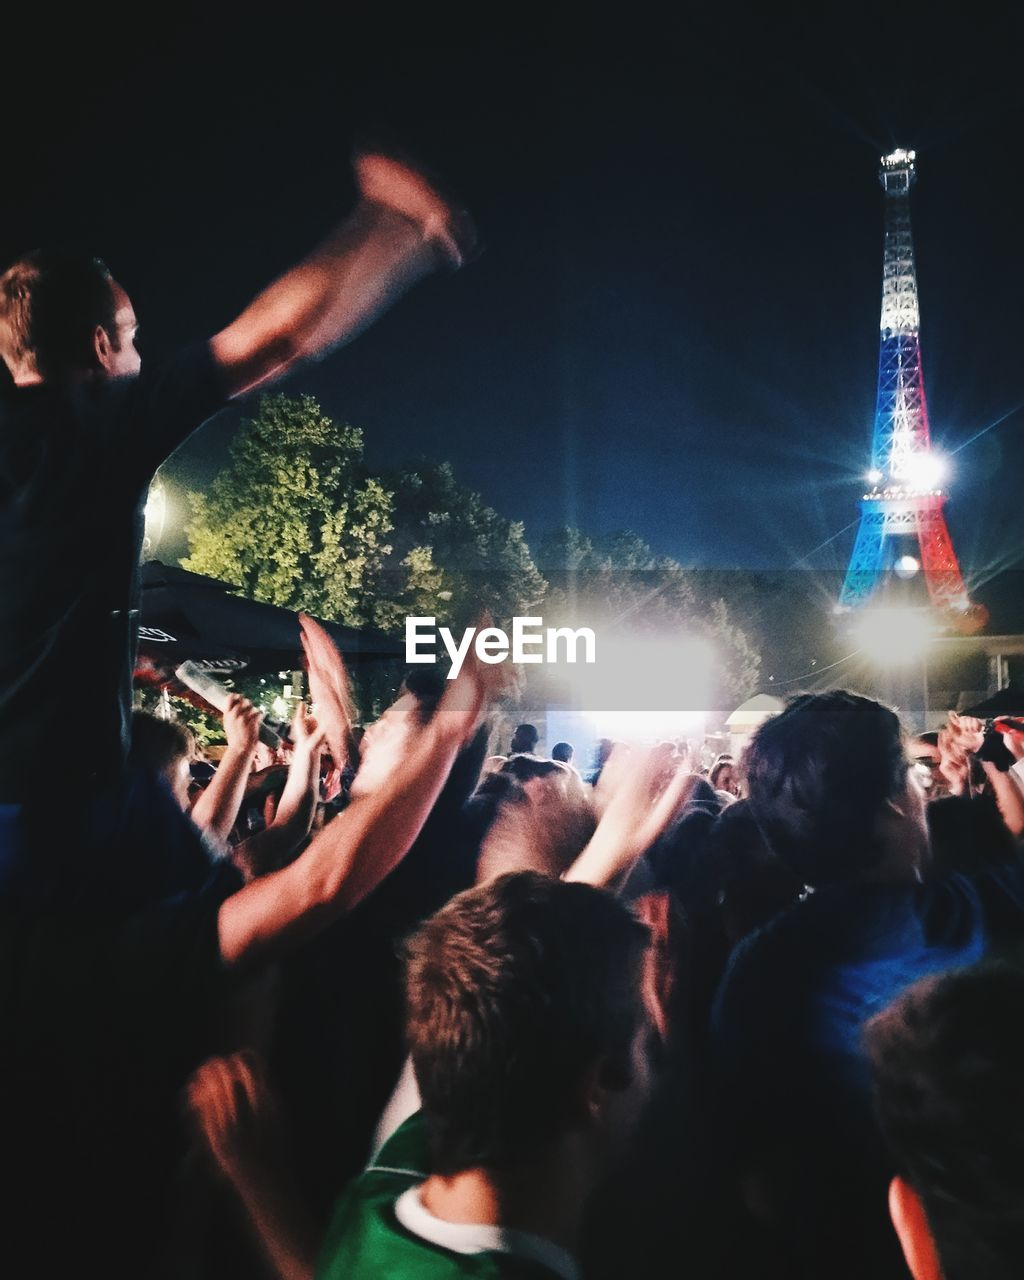 night, large group of people, crowd, illuminated, real people, arts culture and entertainment, excitement, leisure activity, men, celebration, enjoyment, fun, event, women, travel destinations, nightlife, outdoors, lifestyles, performance, audience, popular music concert, sky, people